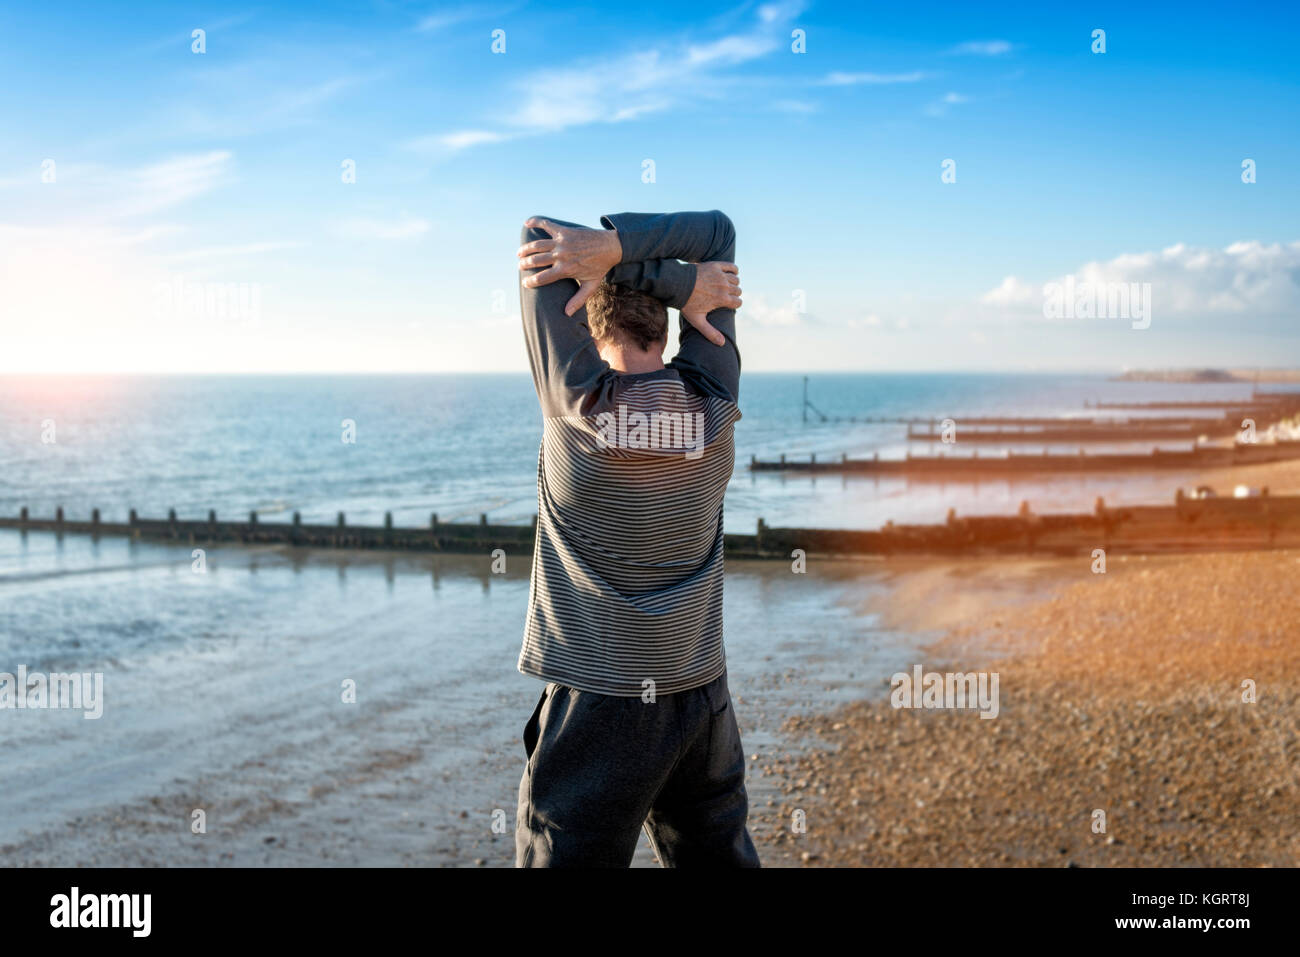 man stretching by the sea, warming up before exercise training. - Stock Image